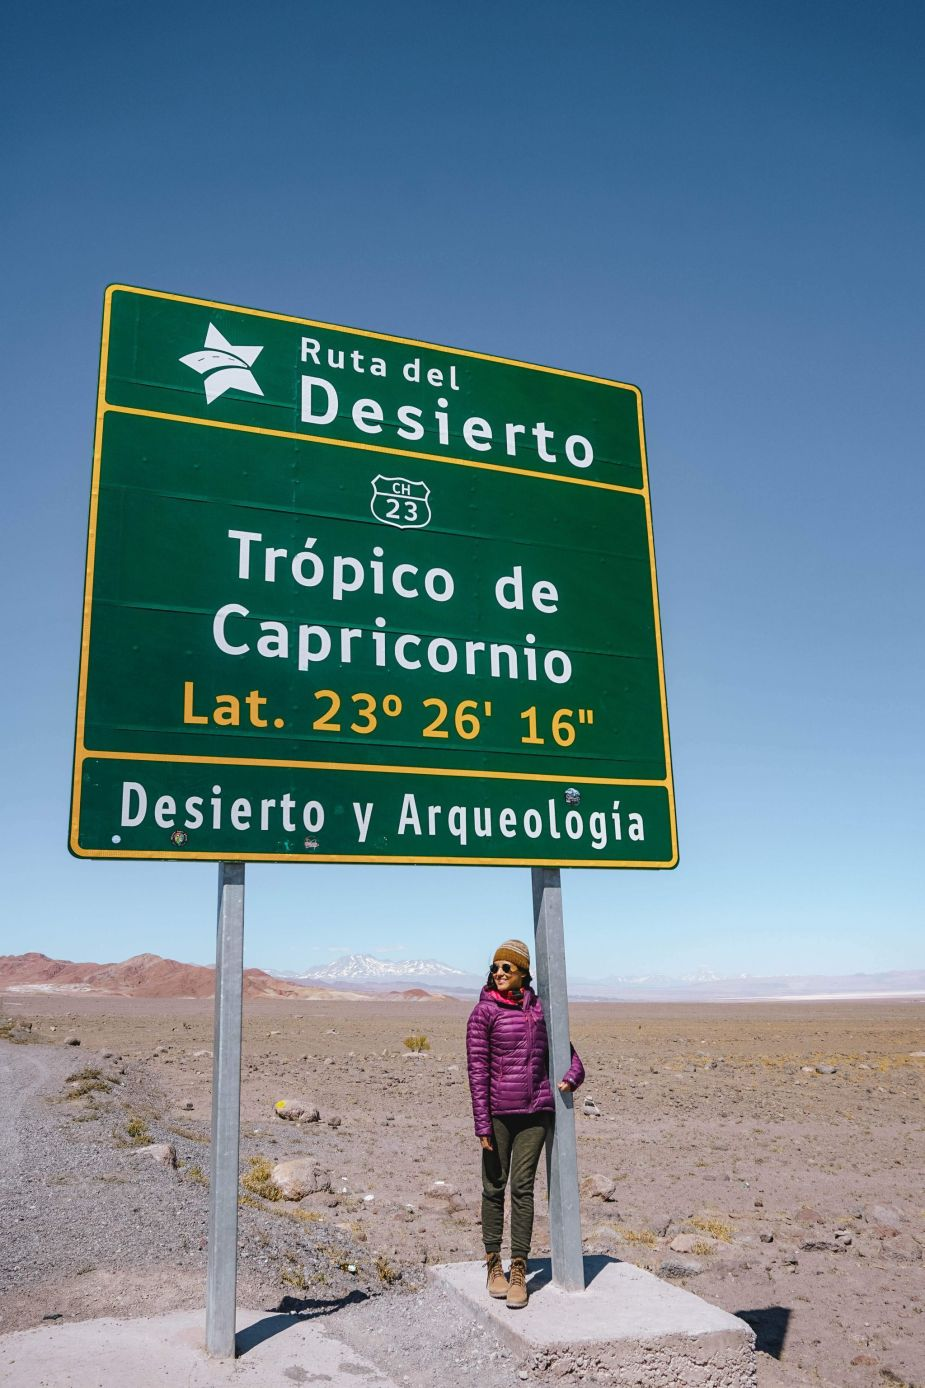 Self-driving guide-to-Atacama-Desert-itinerary-must-see-spots-39